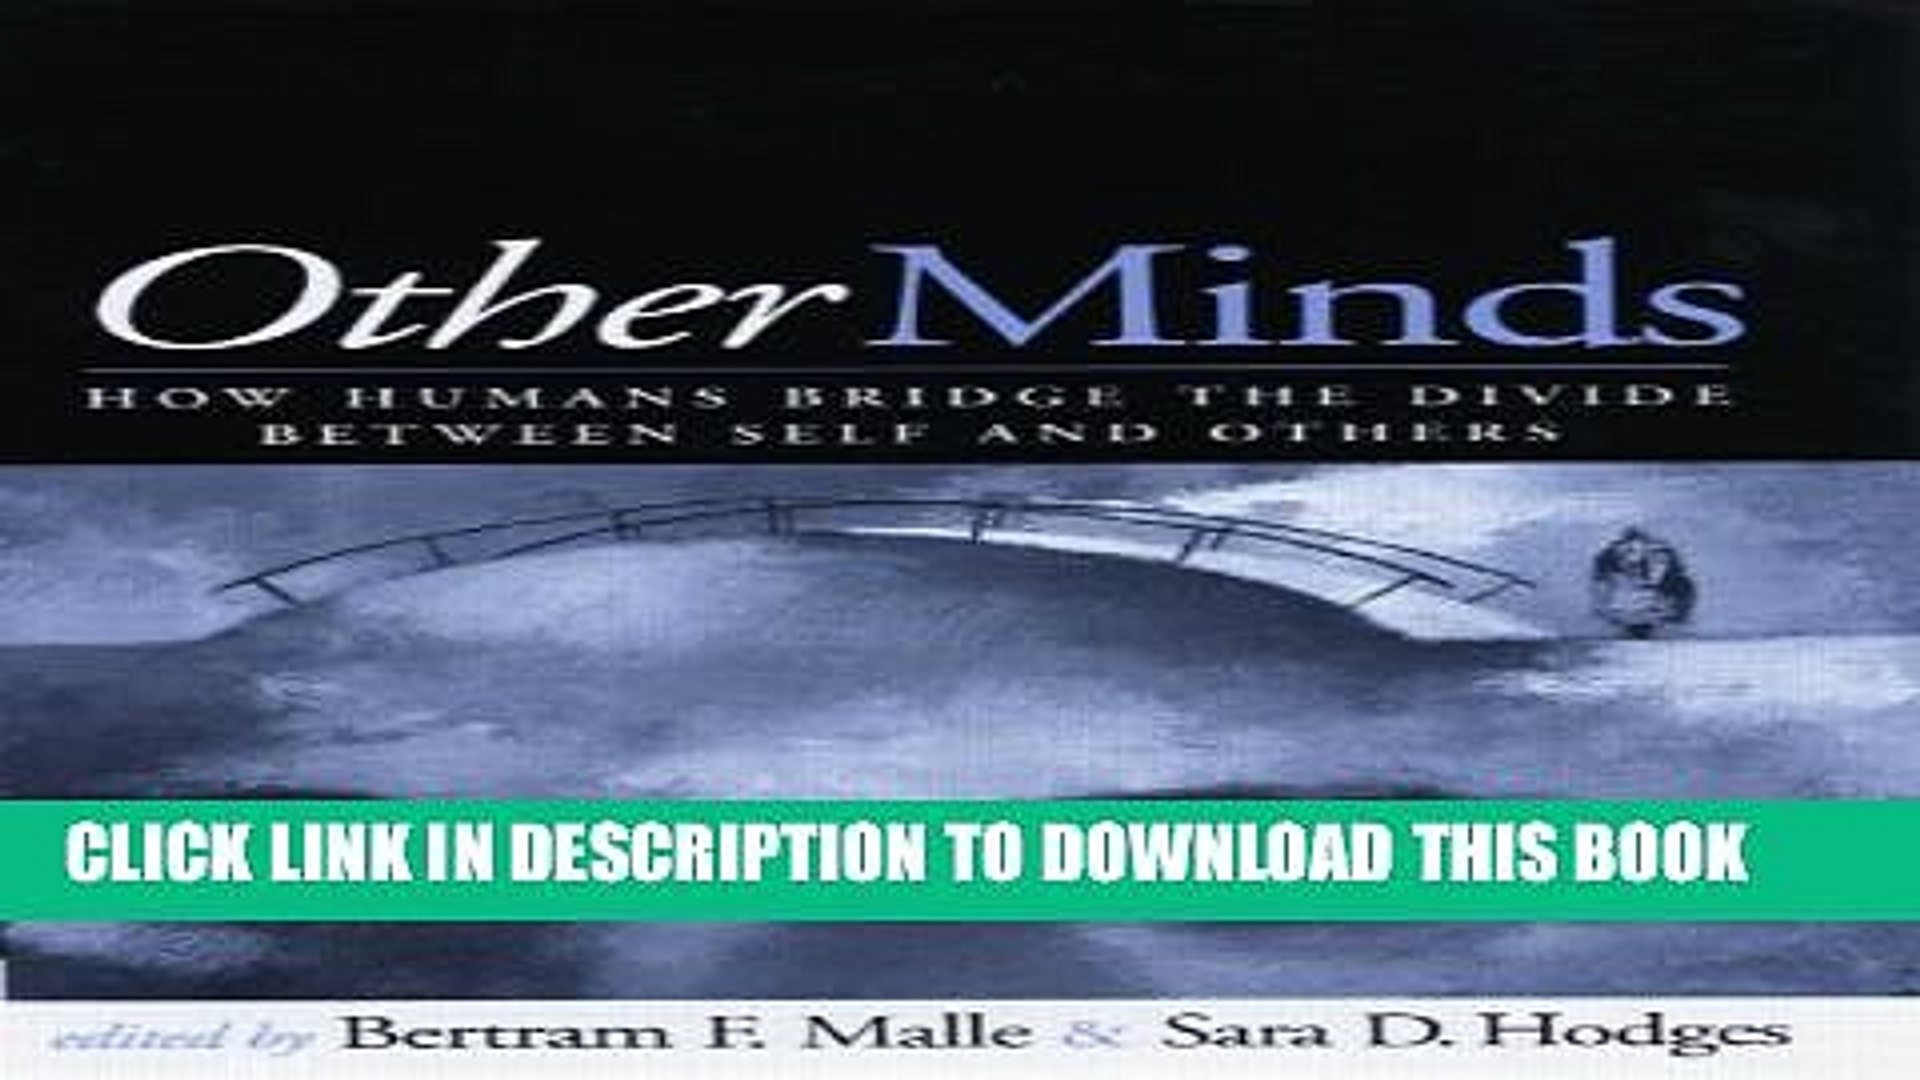 [PDF] Other Minds: How Humans Bridge the Divide between Self and Others Full Online